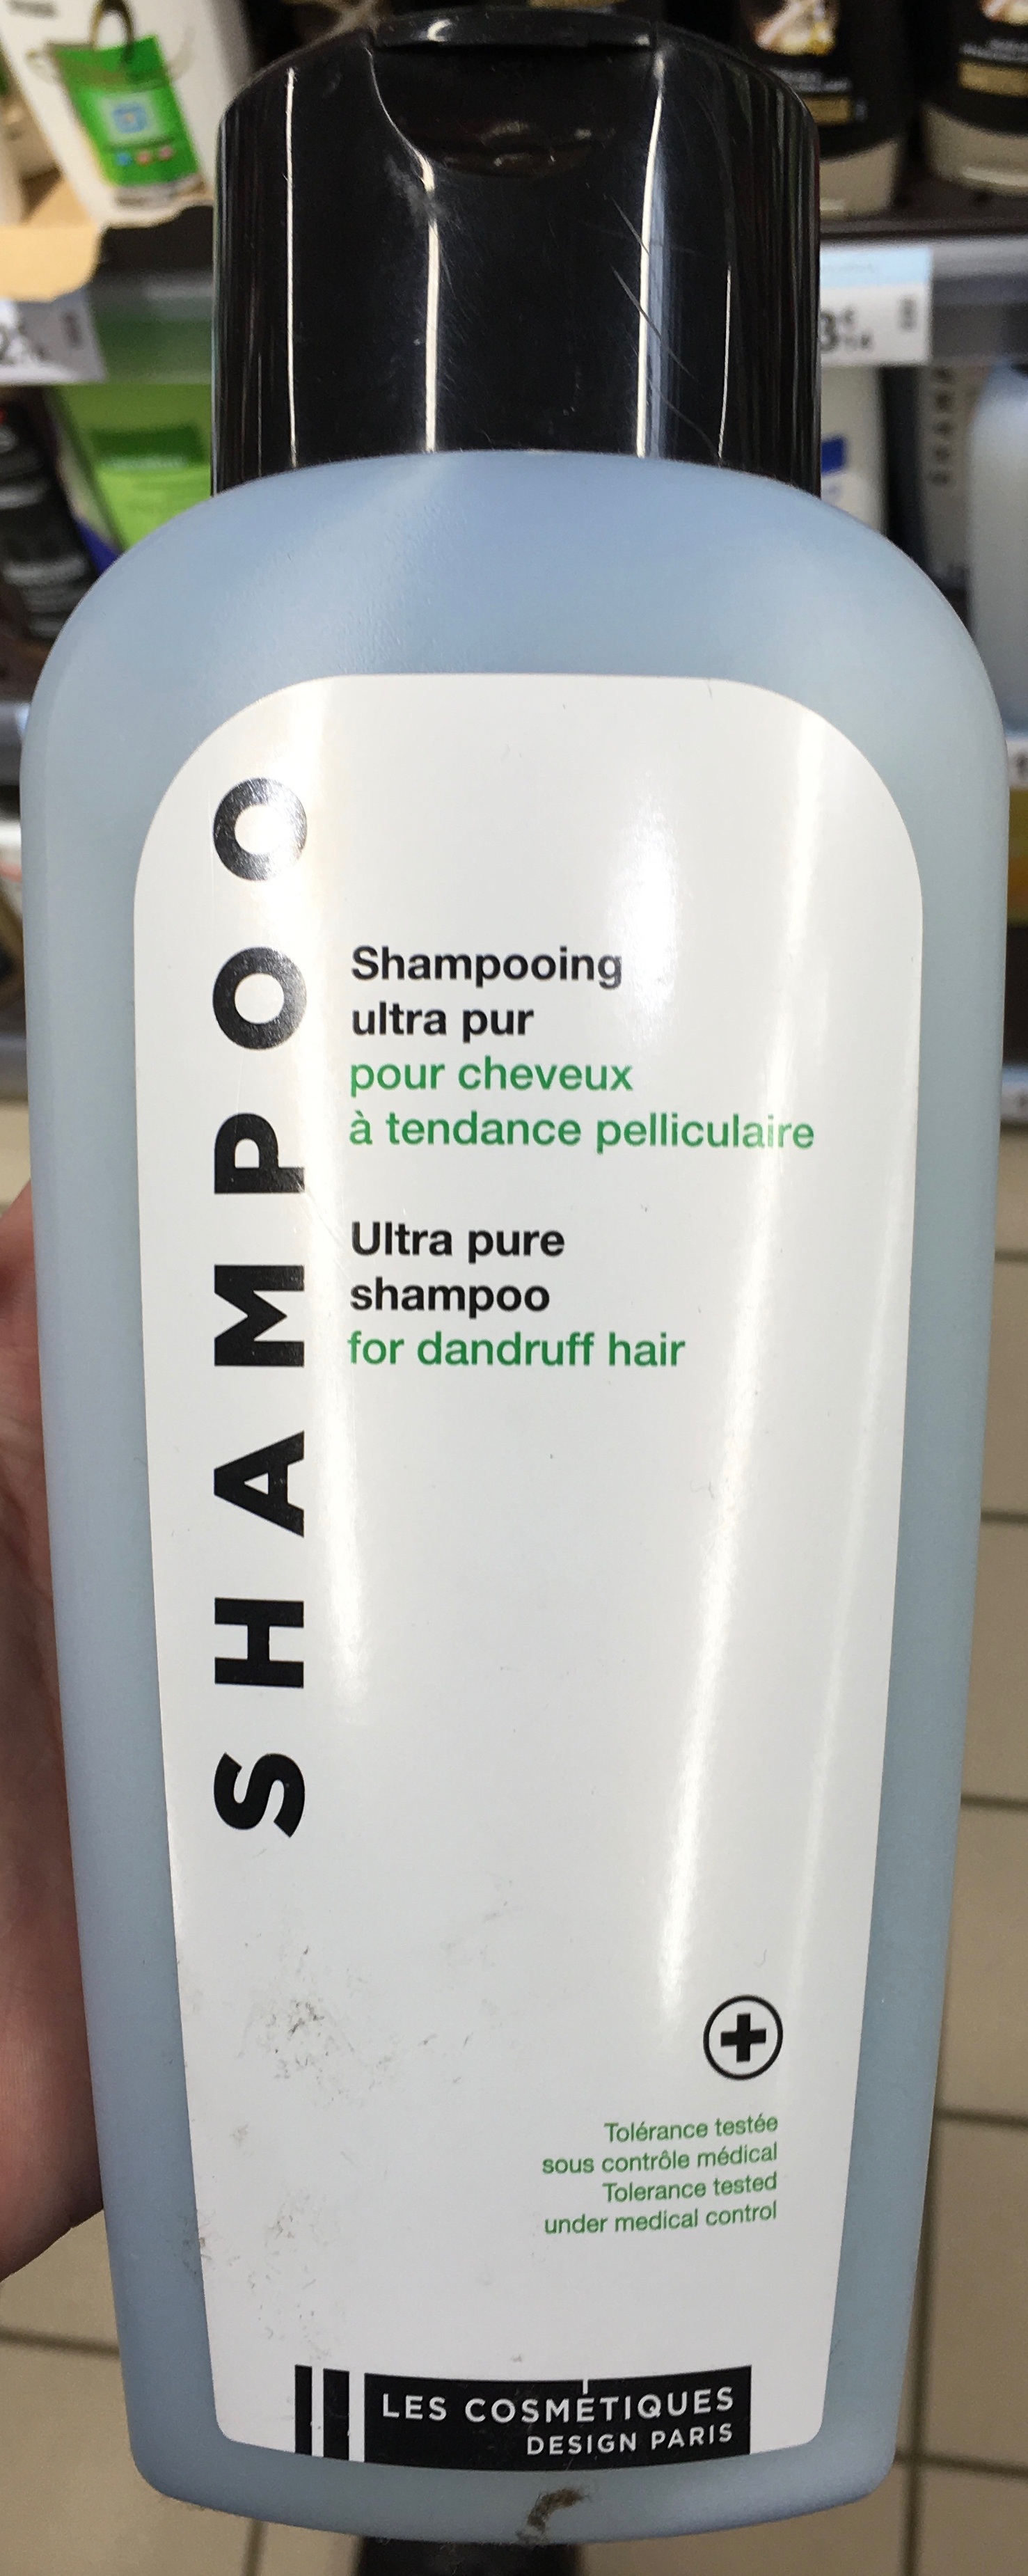 Shampooing ultra pur - Product - fr